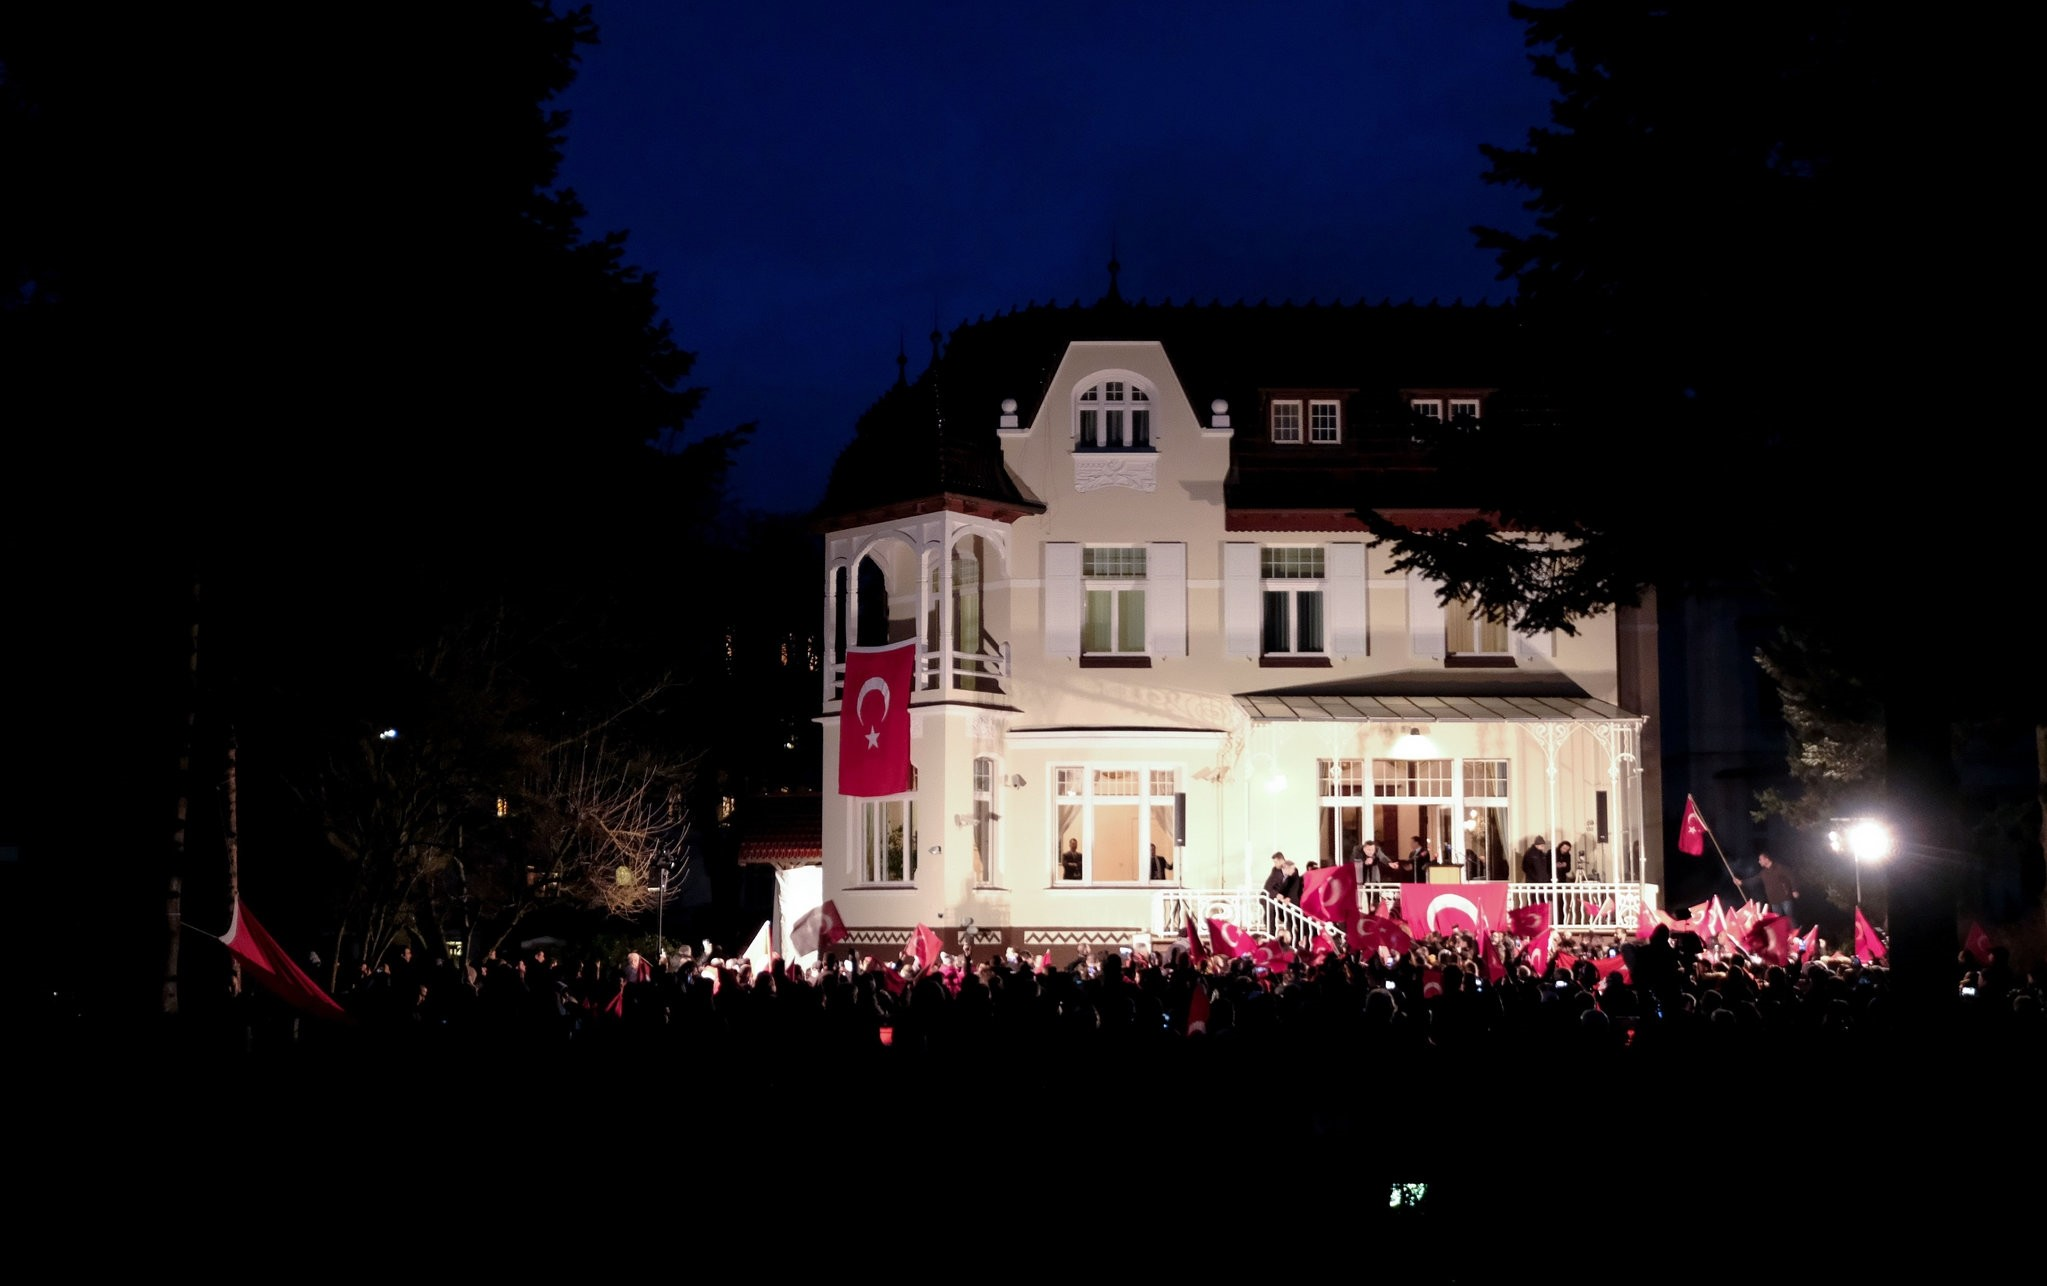 Turkish people gathering at the residence of Turkey's consul general in Hamburg to protest the German gov't after Turkish Foreign Minister Mevlu00fct u00c7avuu015fou011flu's meeting on the upcoming referendum in Hamburg was cancelled by German officials, March 7.